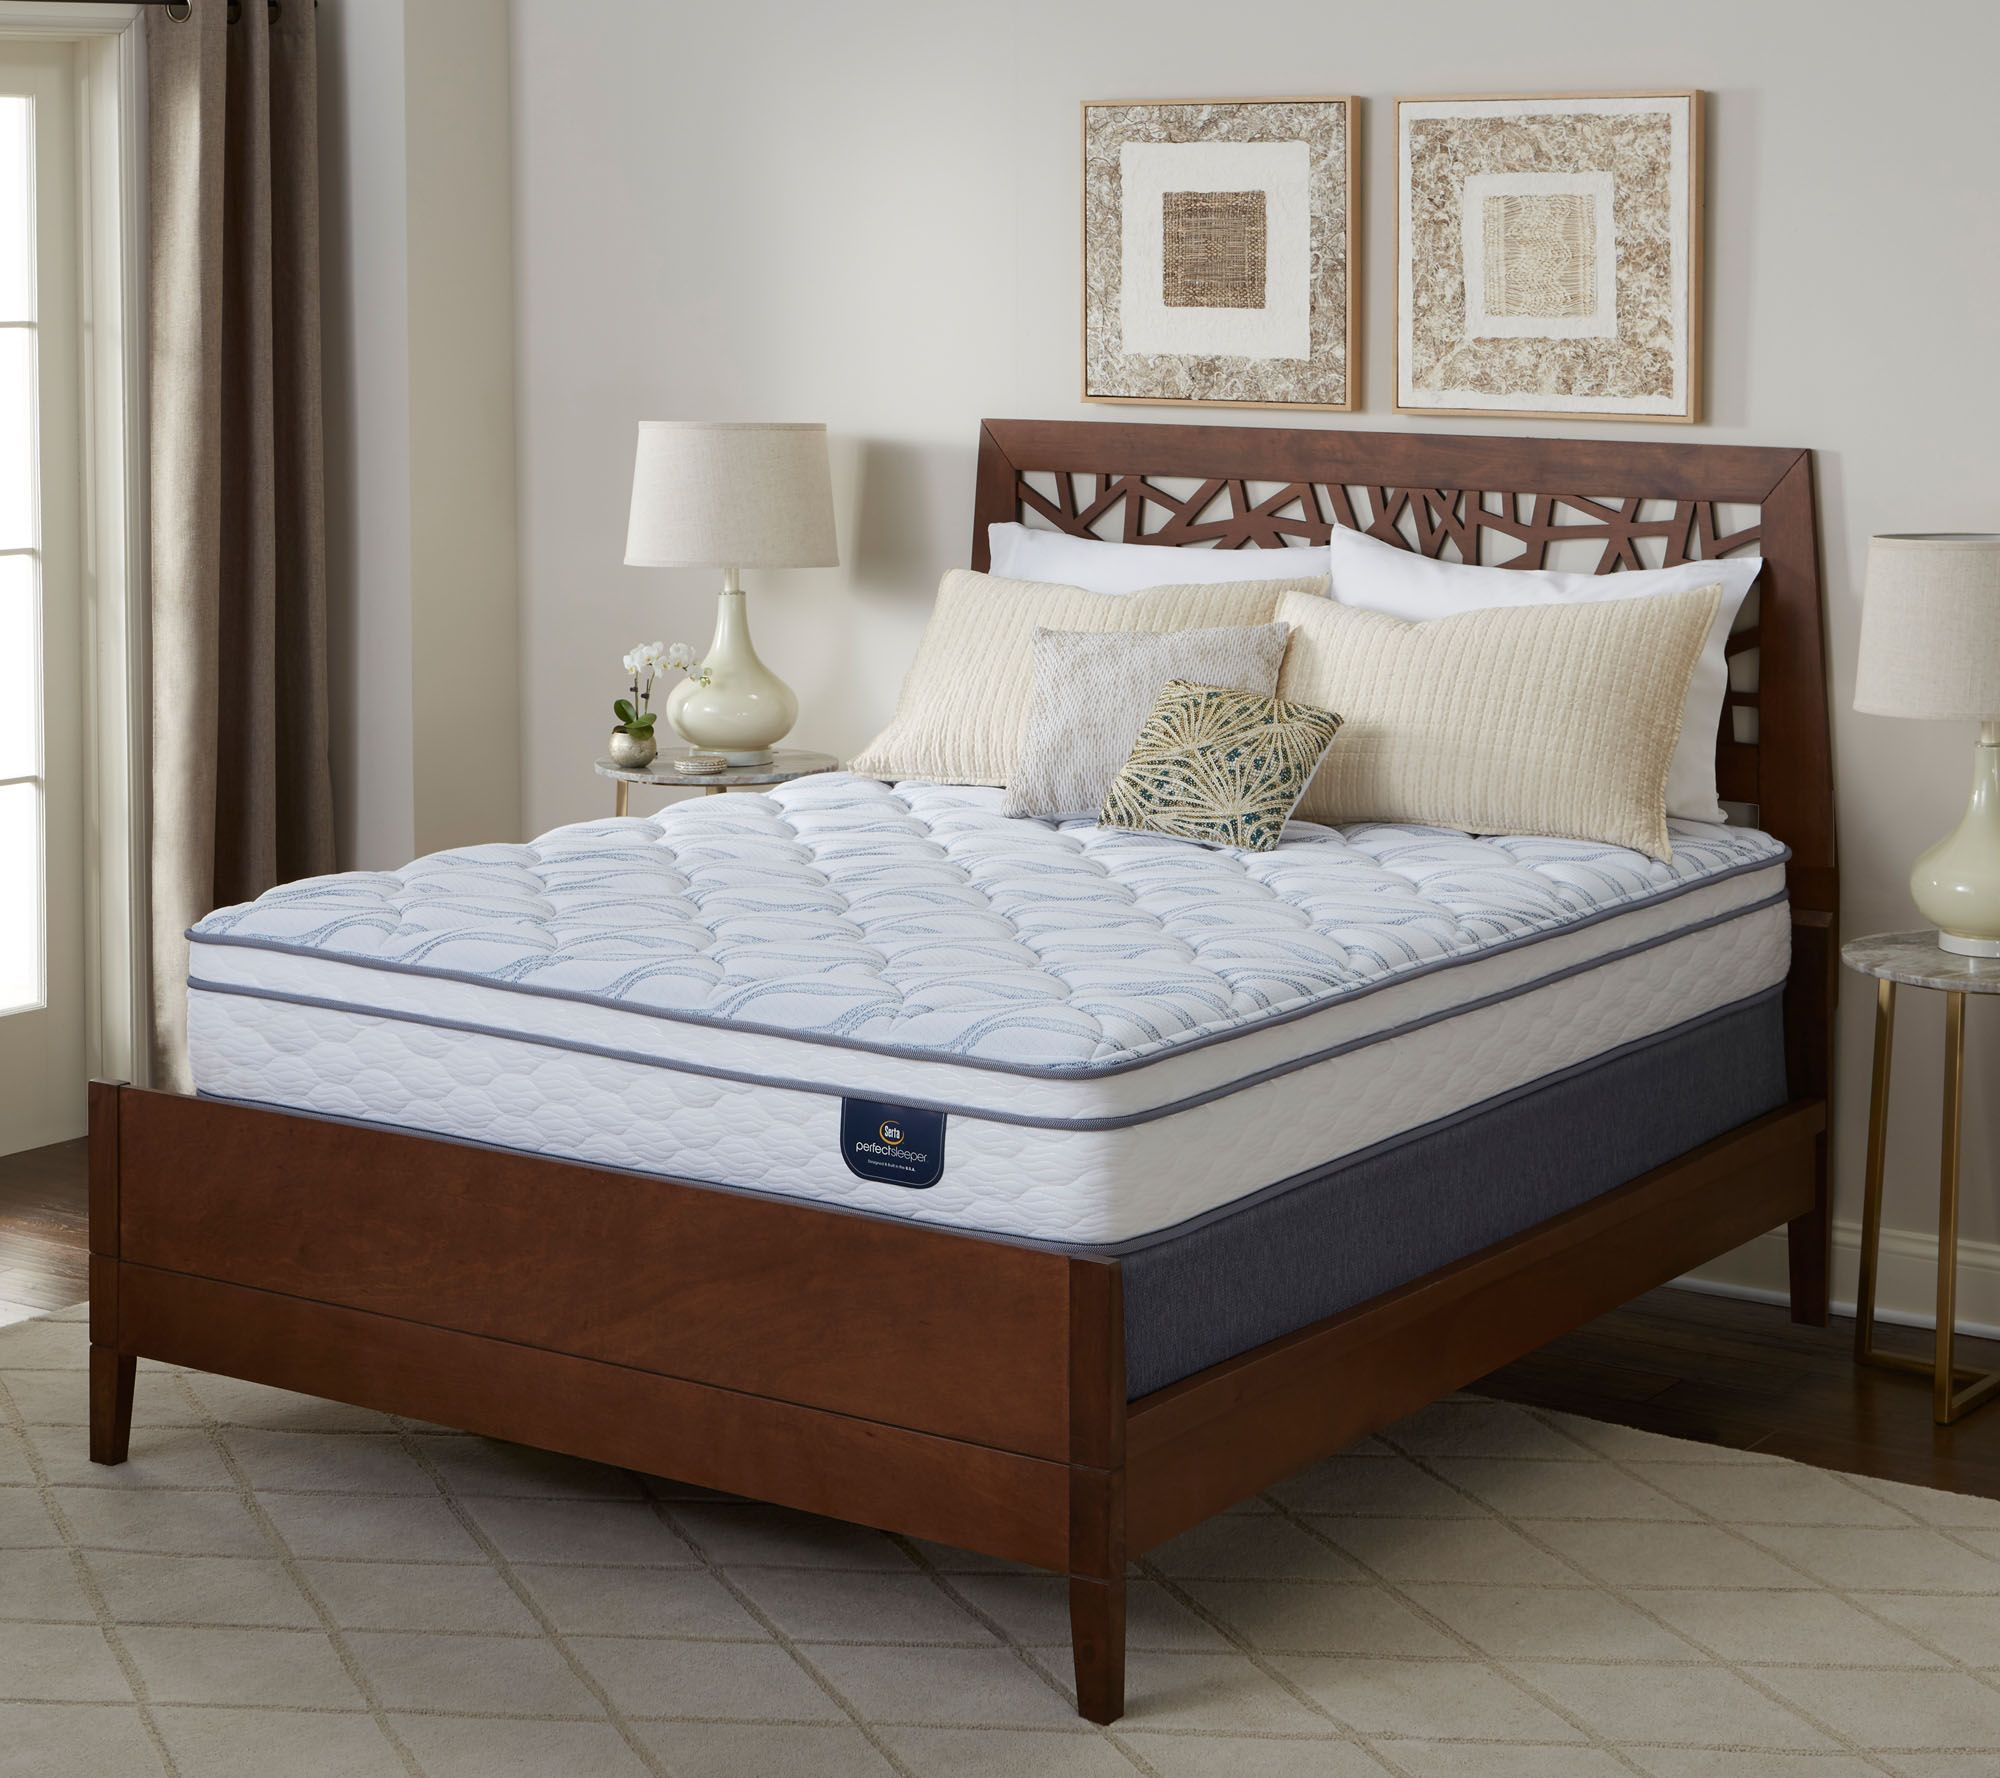 frame queen sets sale set cheap bed for size mattress promotion